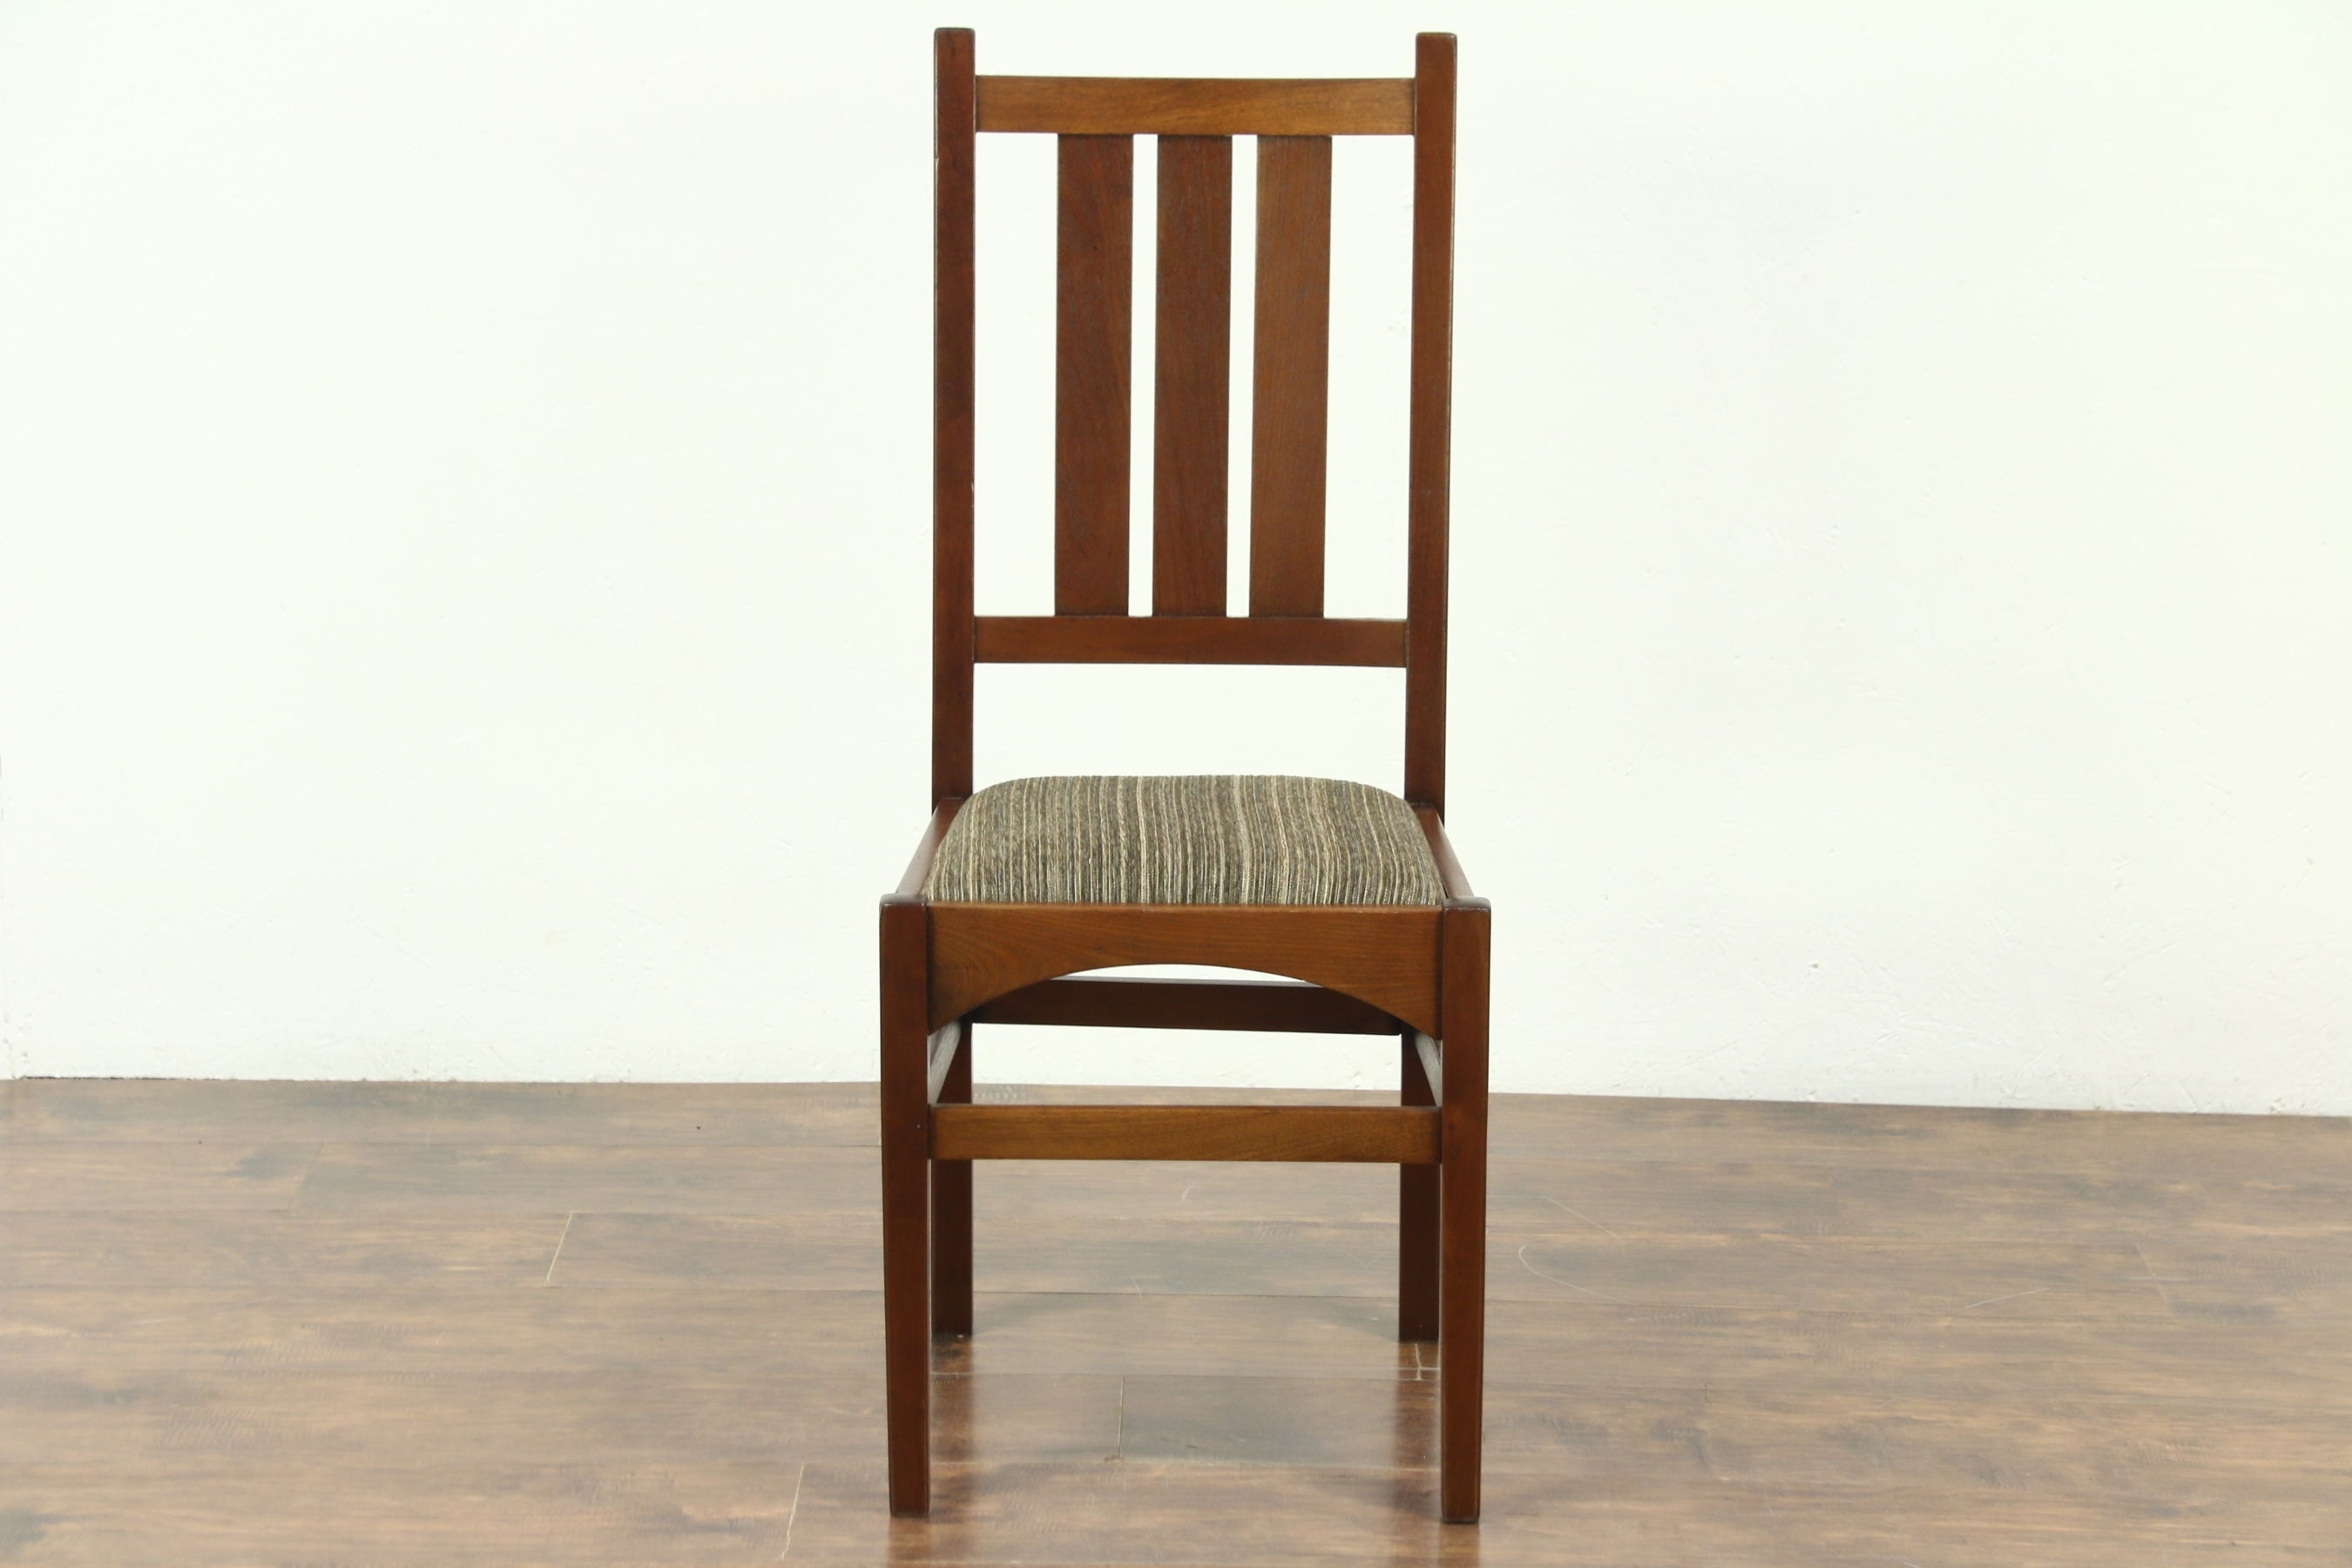 Craftsman Upholstered Side Chairs Within Best And Newest Sold – Arts & Crafts Antique Craftsman Desk Or Arm Chair, New (View 5 of 20)